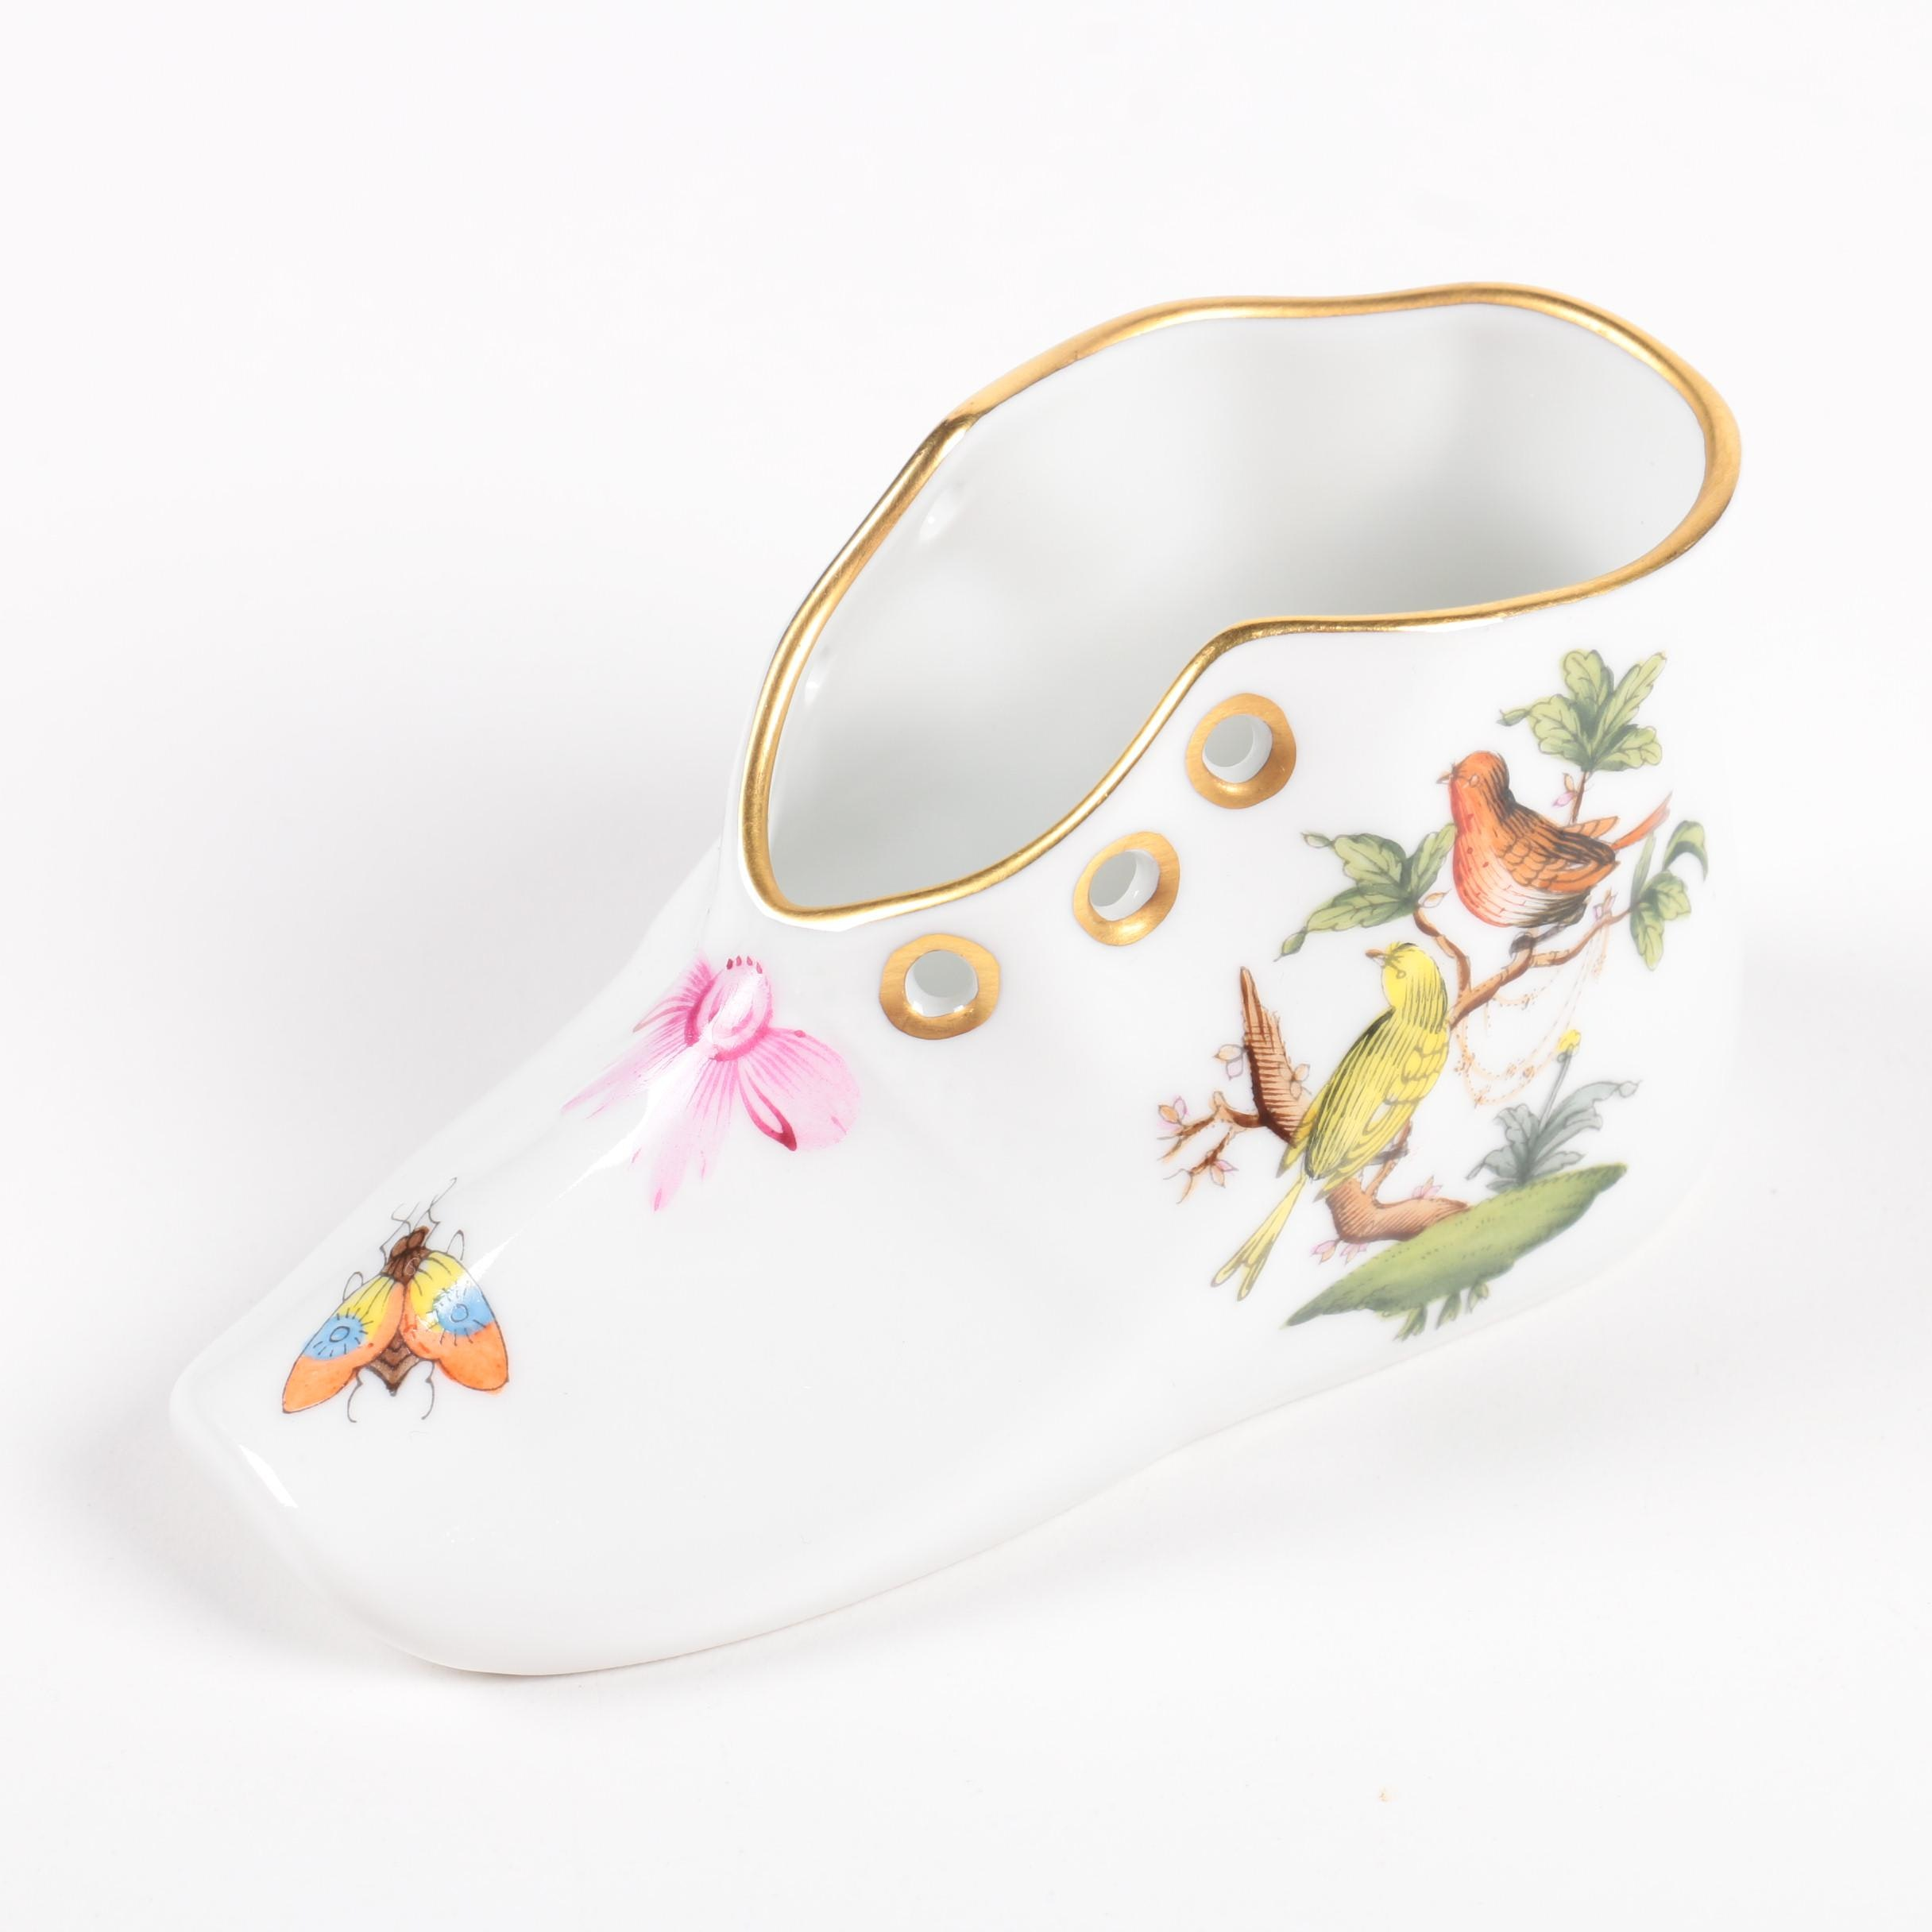 PRIORITY-Herend Hungary Porcelain Shoe Figurine